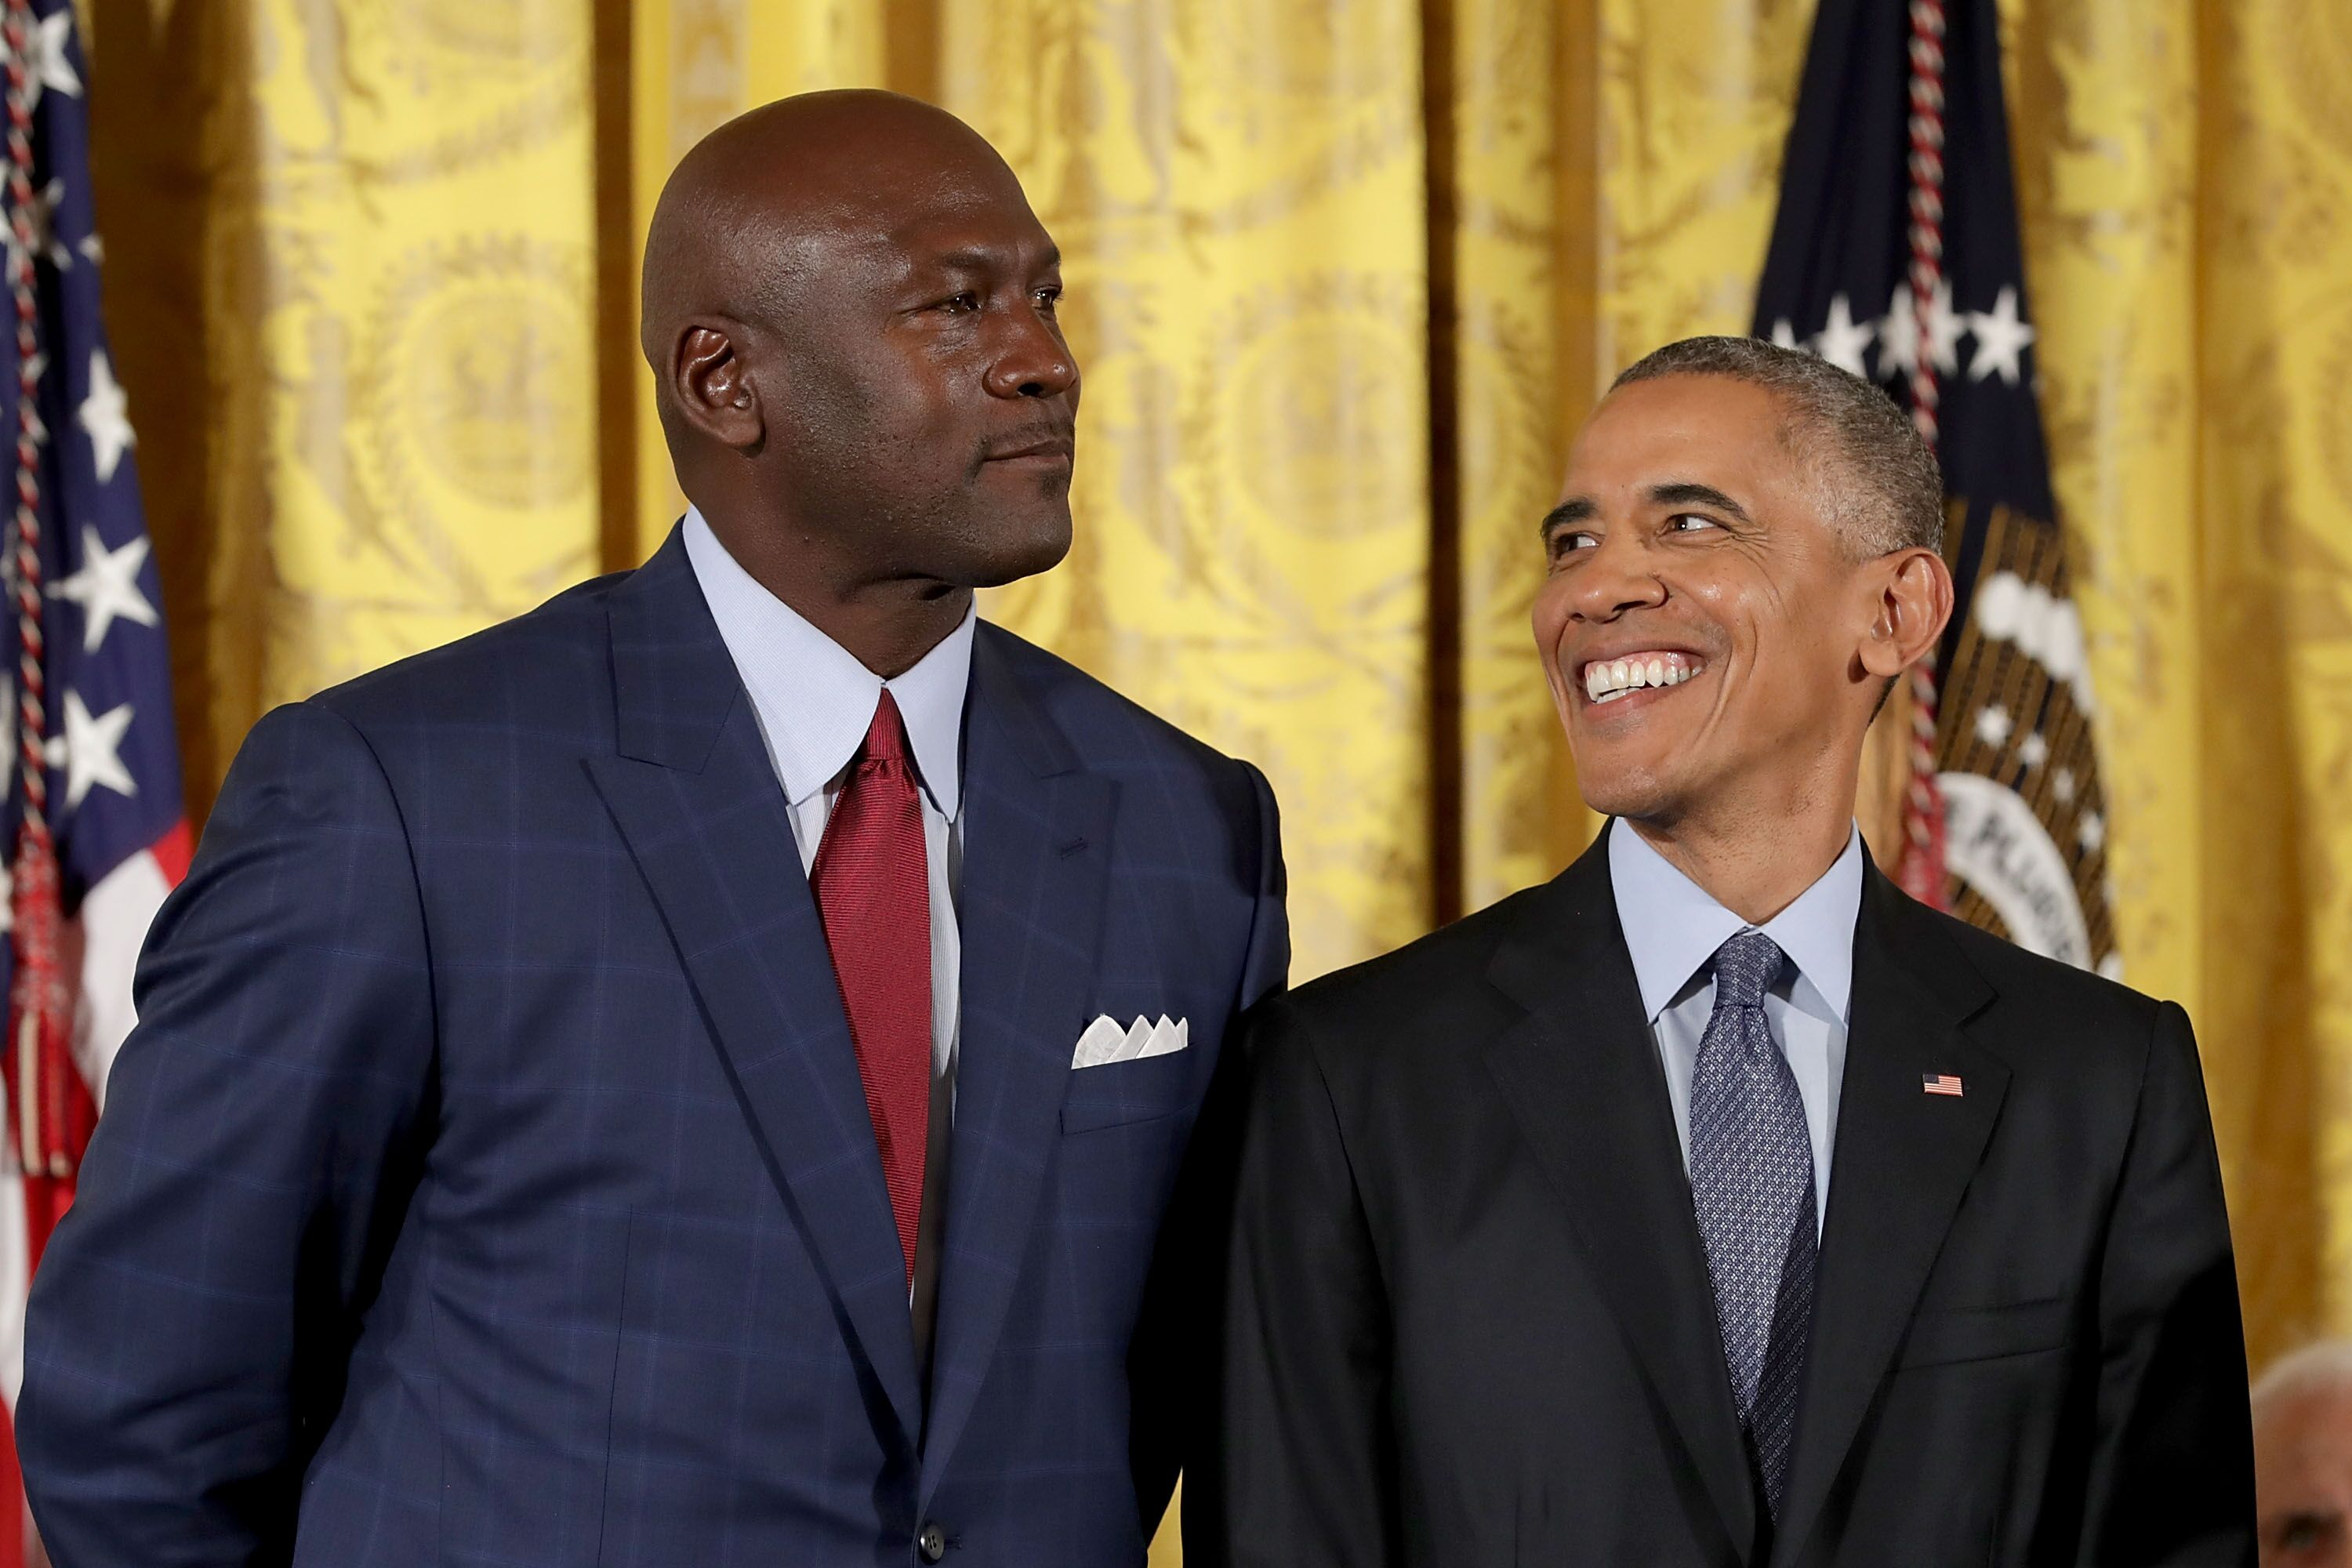 625099436-obama-honors-21-americans-with-presidential-medal-of-freedom.jpg